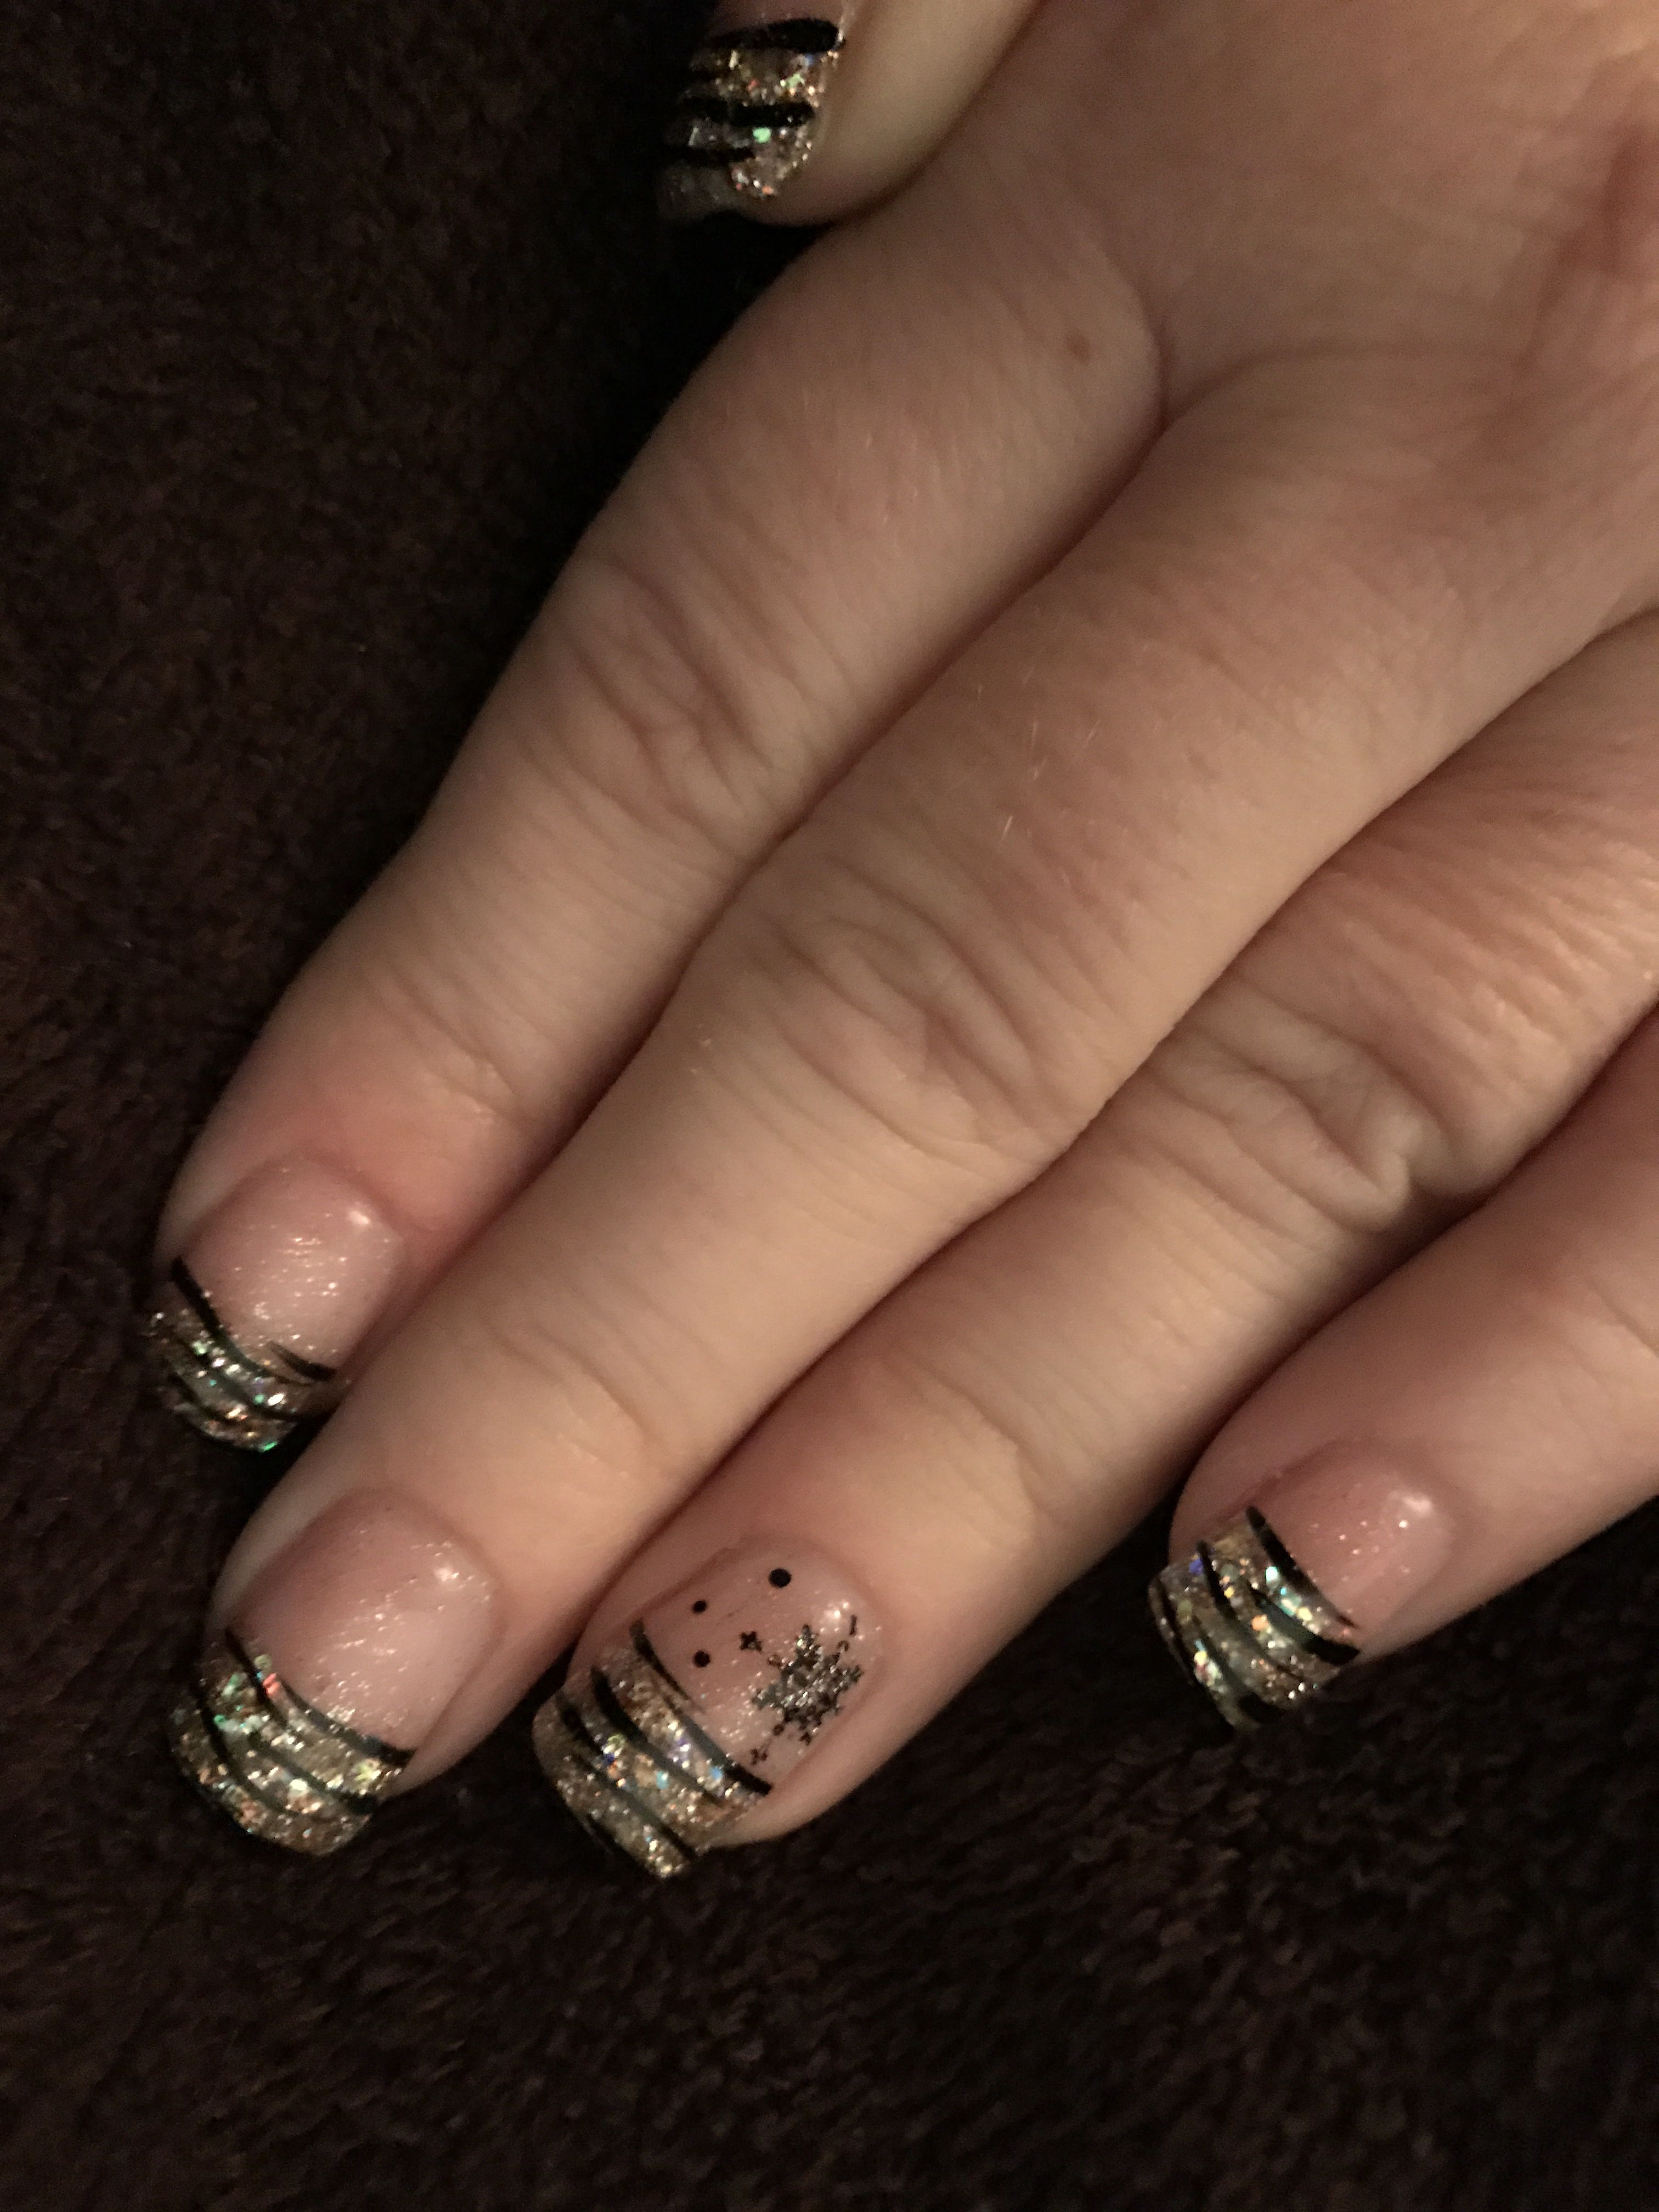 New Years sparkle nails done by #sallee | Nails | Pinterest ...